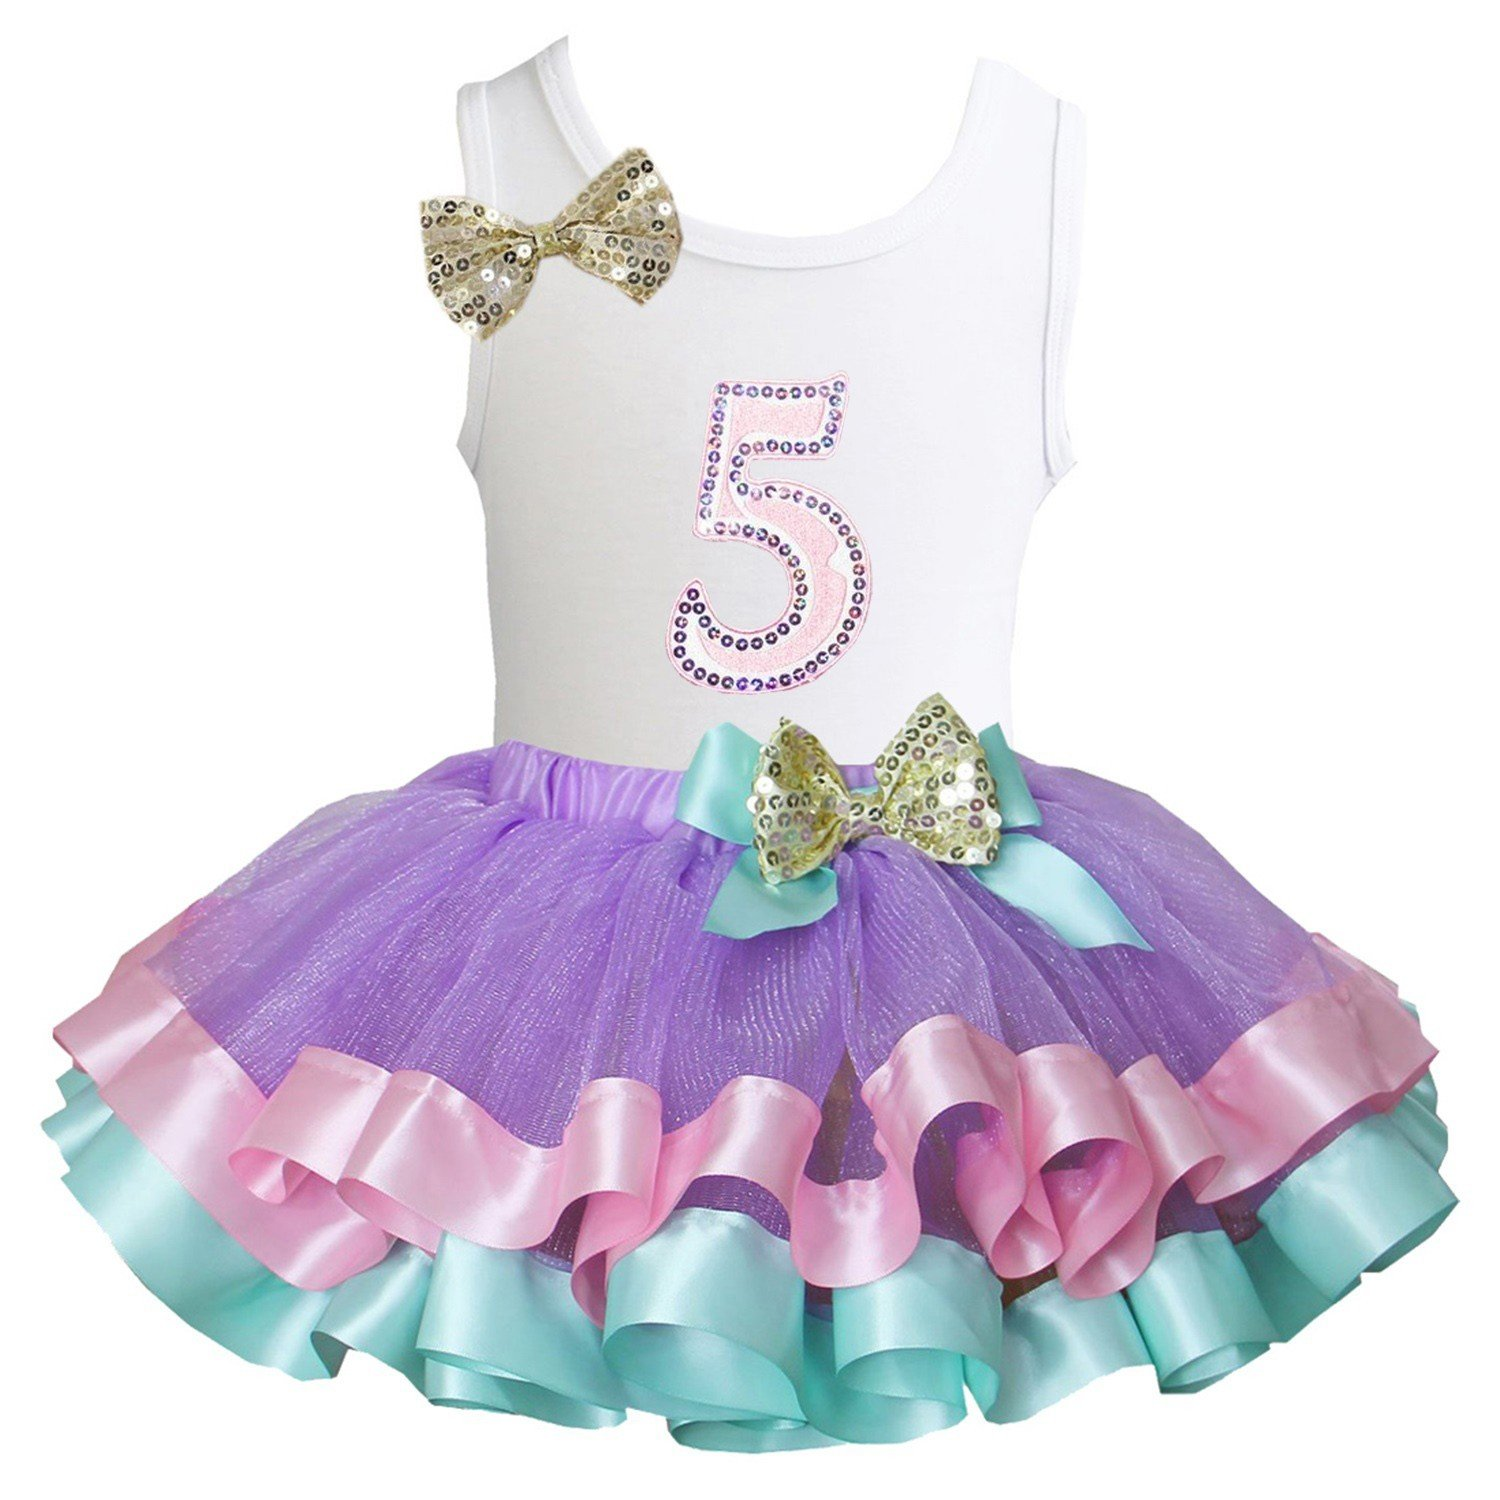 Kirei Sui Lavender Pink Mint Satin Trimmed Tutu Birthday Tank Top Dress DGDB1TST4A68G